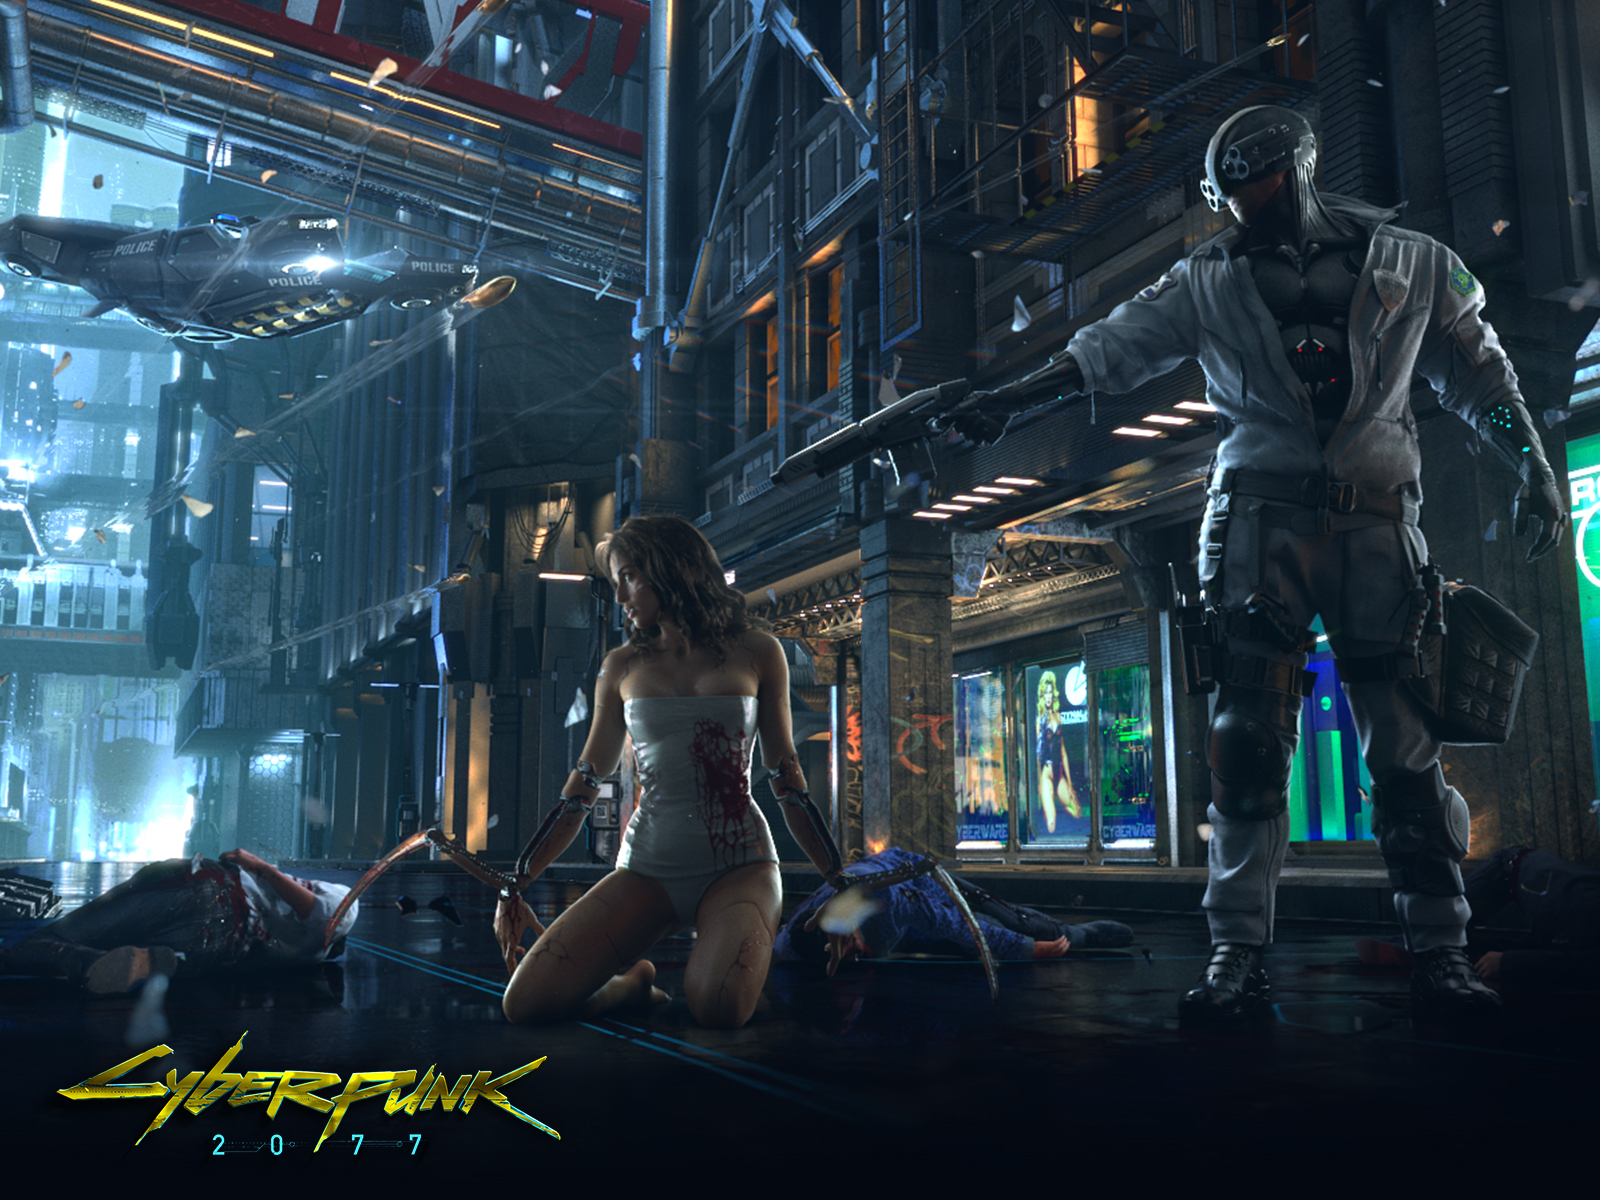 CD Projekt Red's Cyberpunk 2077 – Teaser Trailer Released